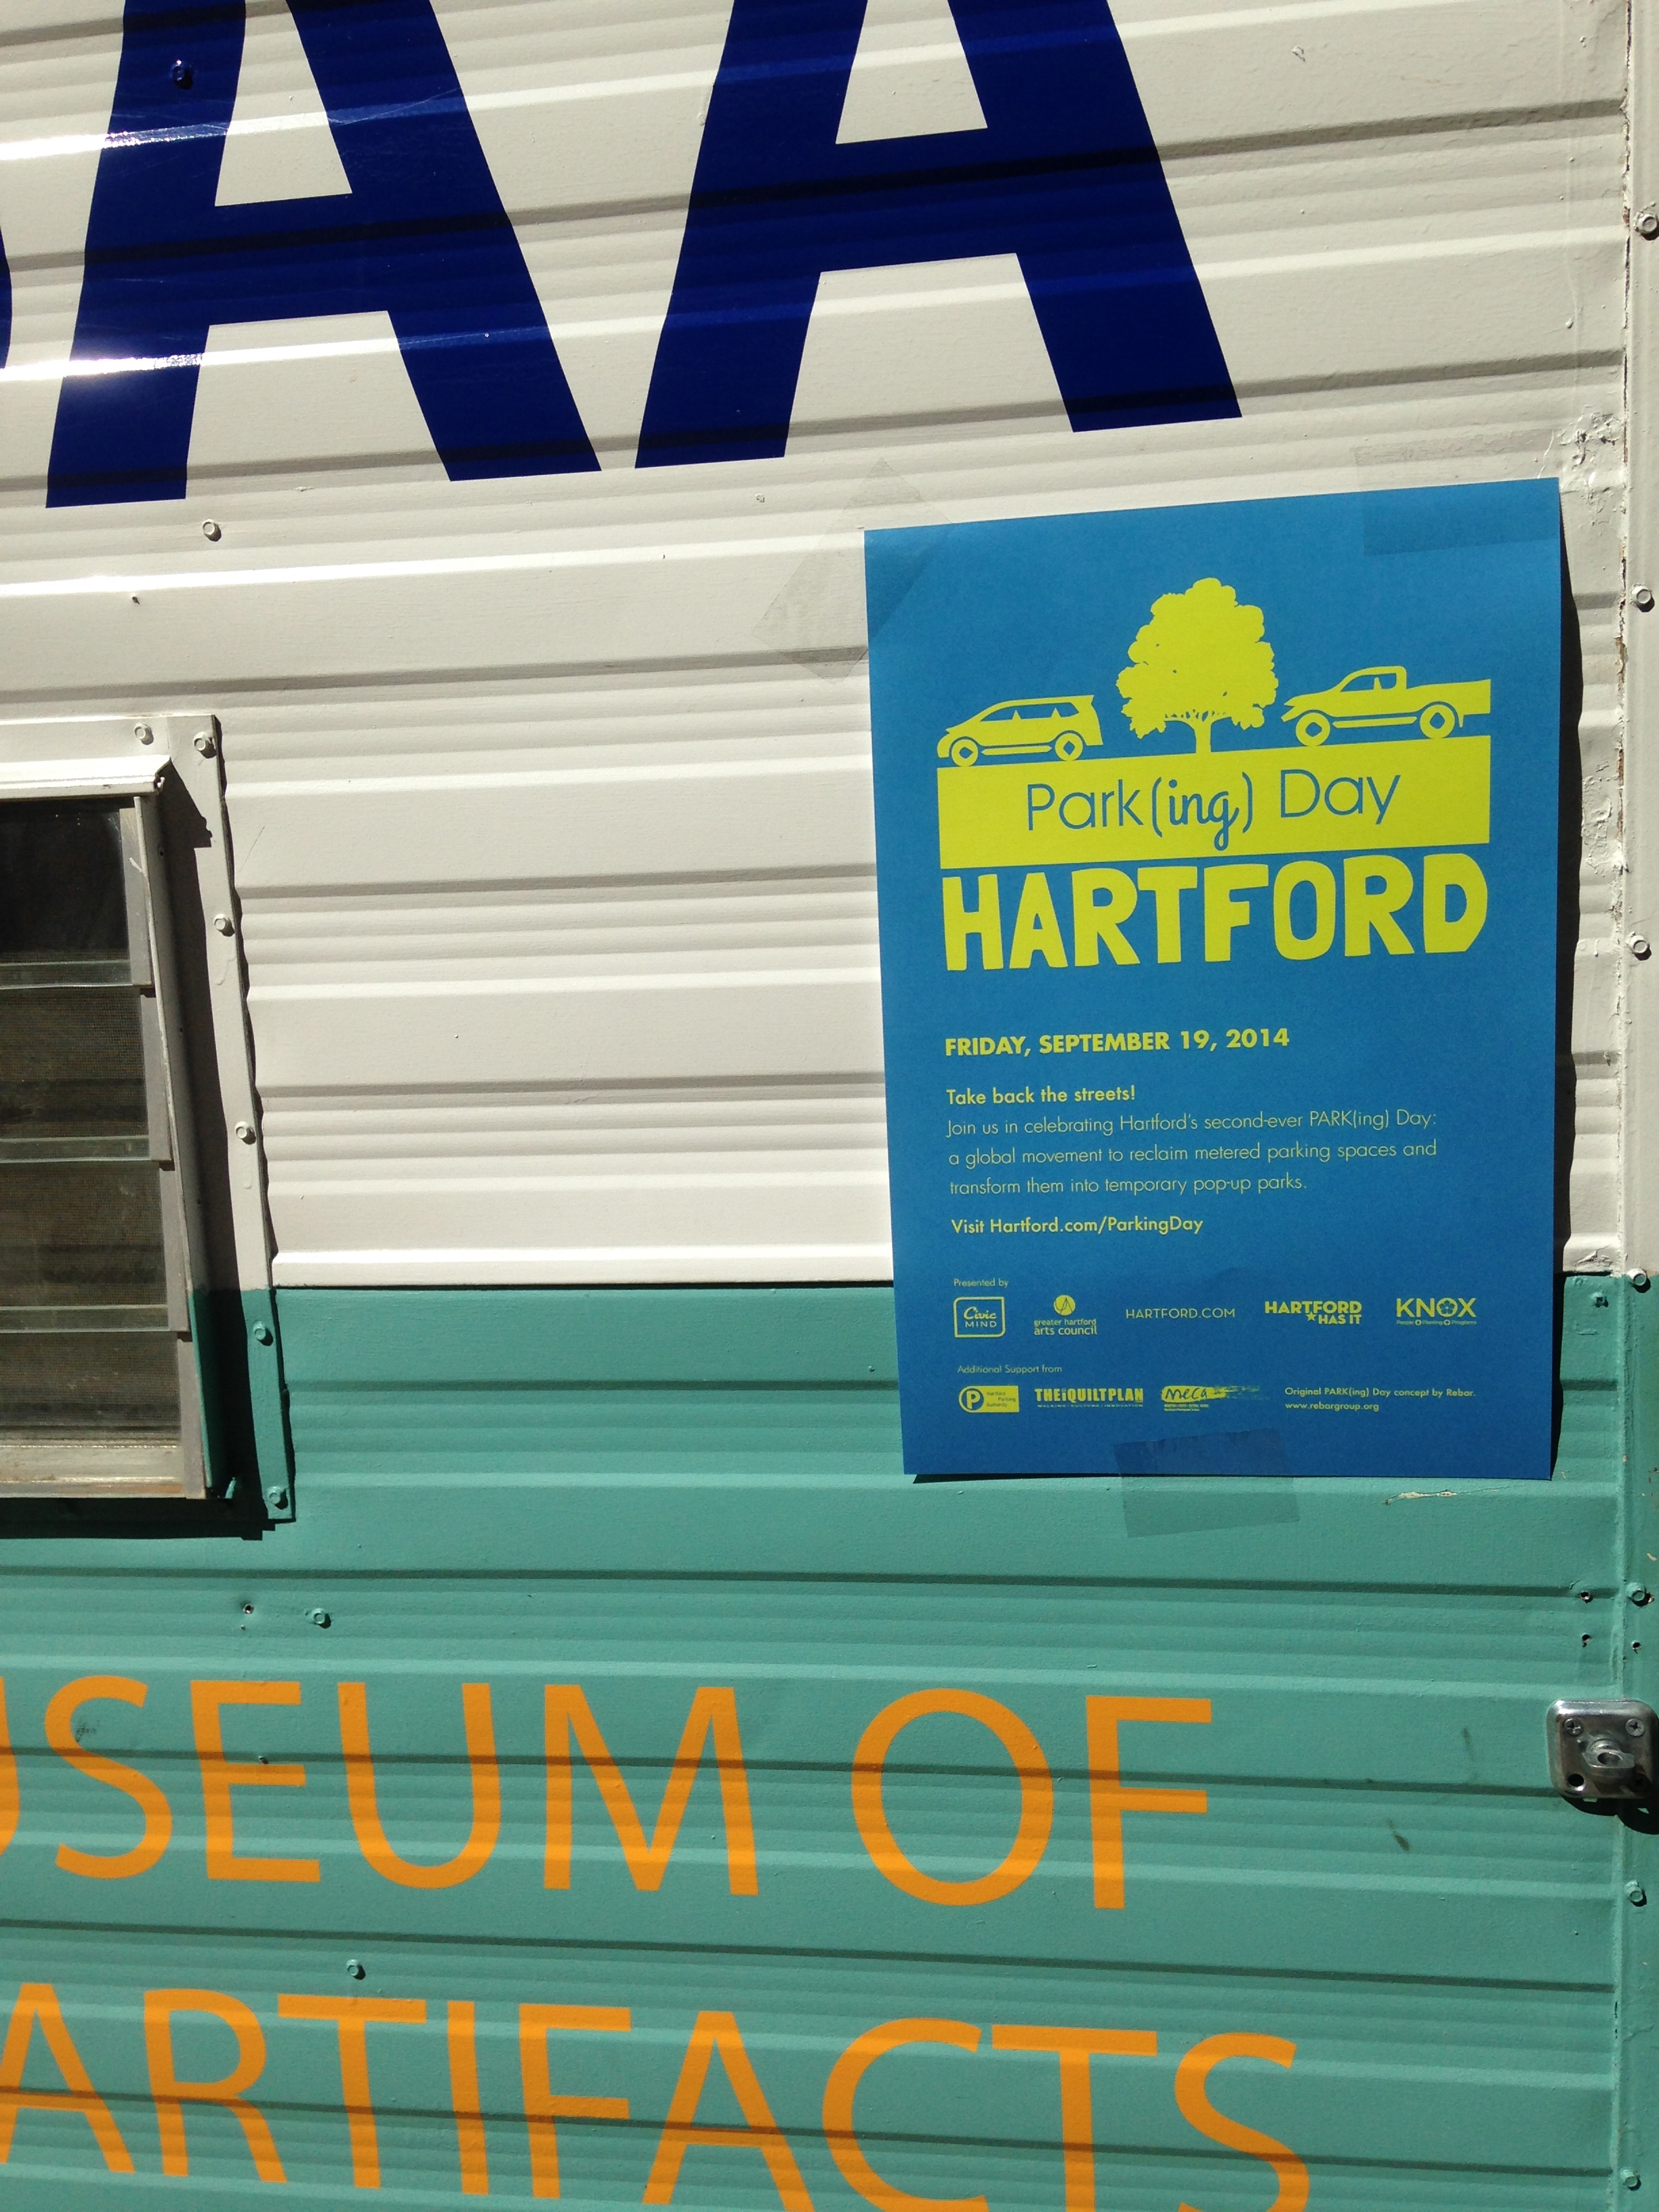 MMoAA takes part in Hartfords Park(ing) Day.